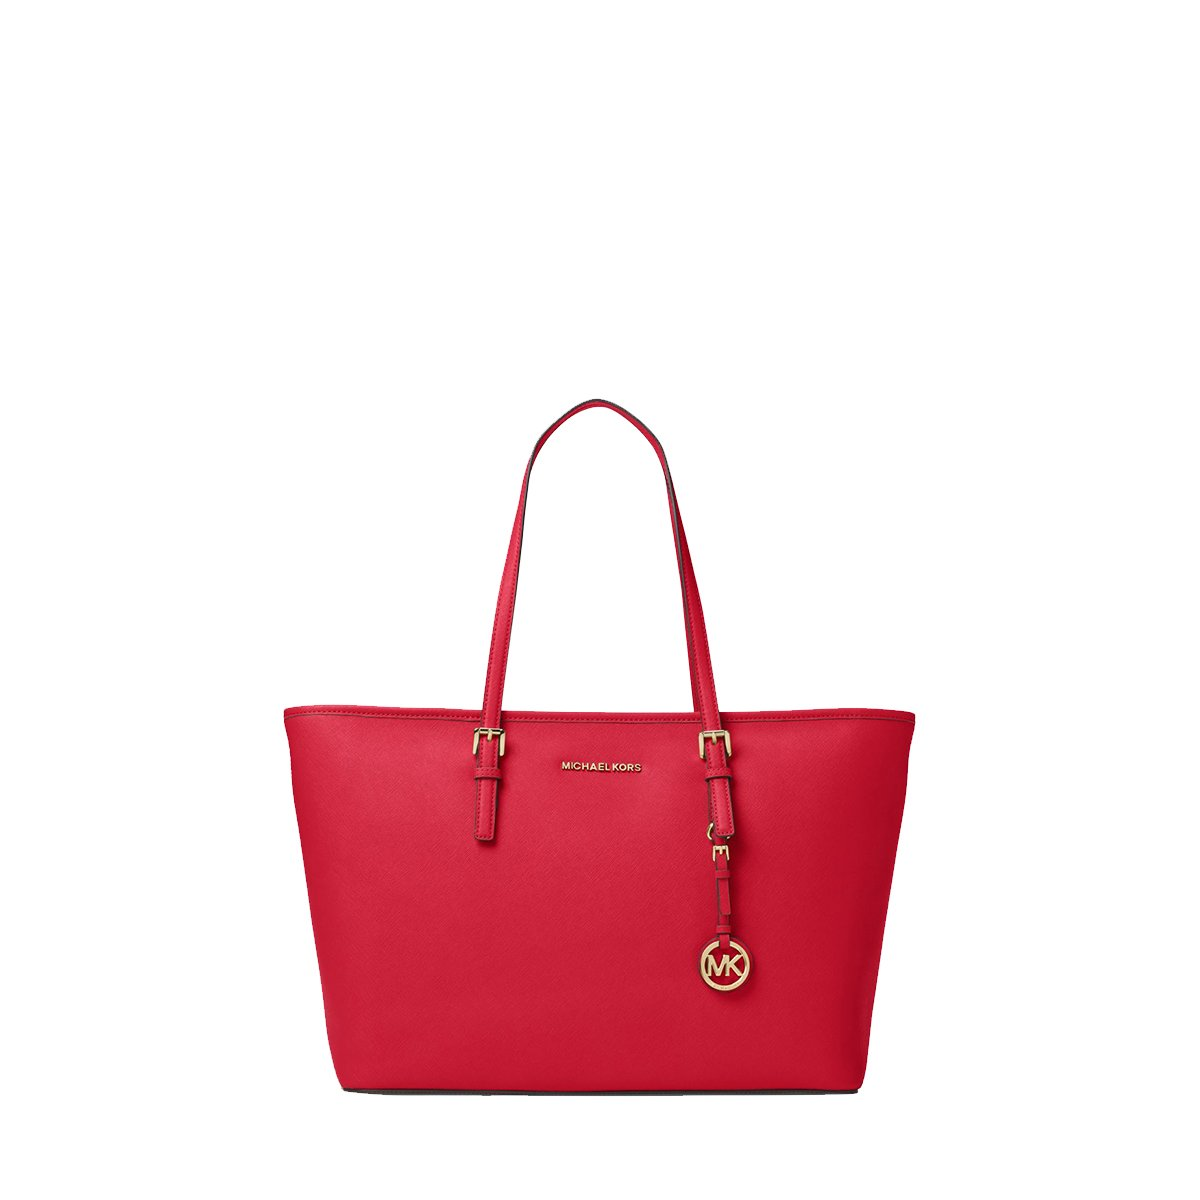 MICHAEL KORS Jet Set Travel Medium Saffiano Leather Top-Zip Tote (Red)